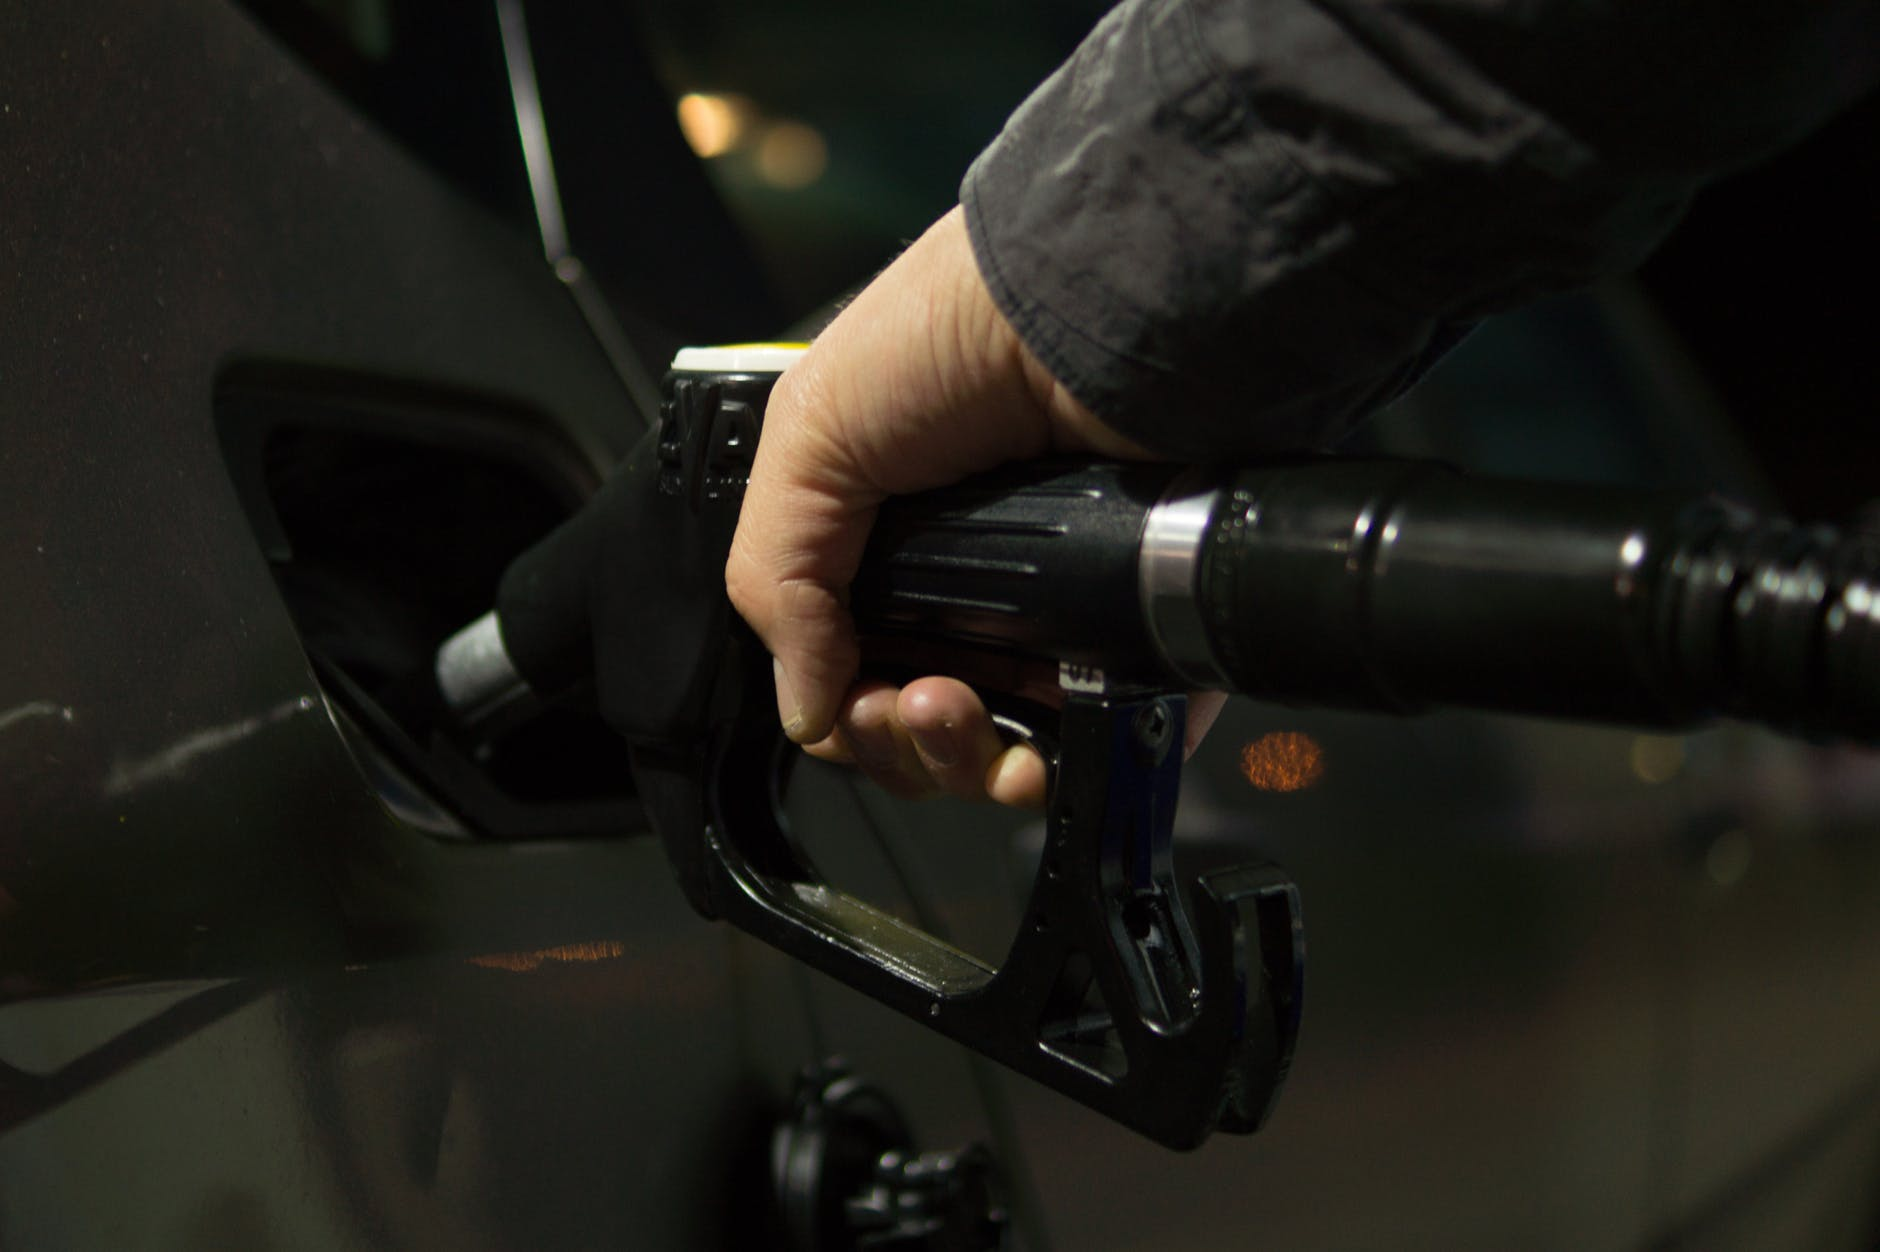 Don't cause extra wear and tear on your car. Fill up before your gas light turns on!